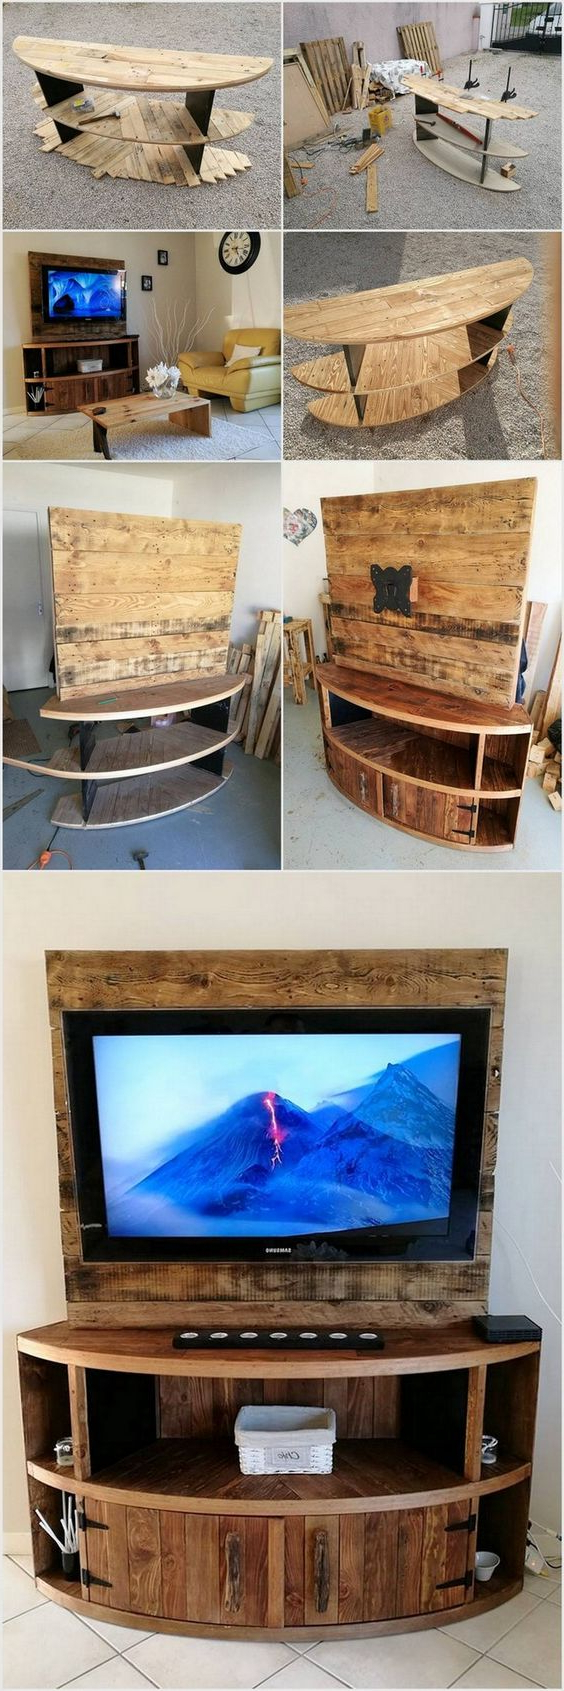 21+ Diy Tv Stand Ideas For Your Weekend Home Project Regarding Tobias Media Console Tables (View 3 of 20)